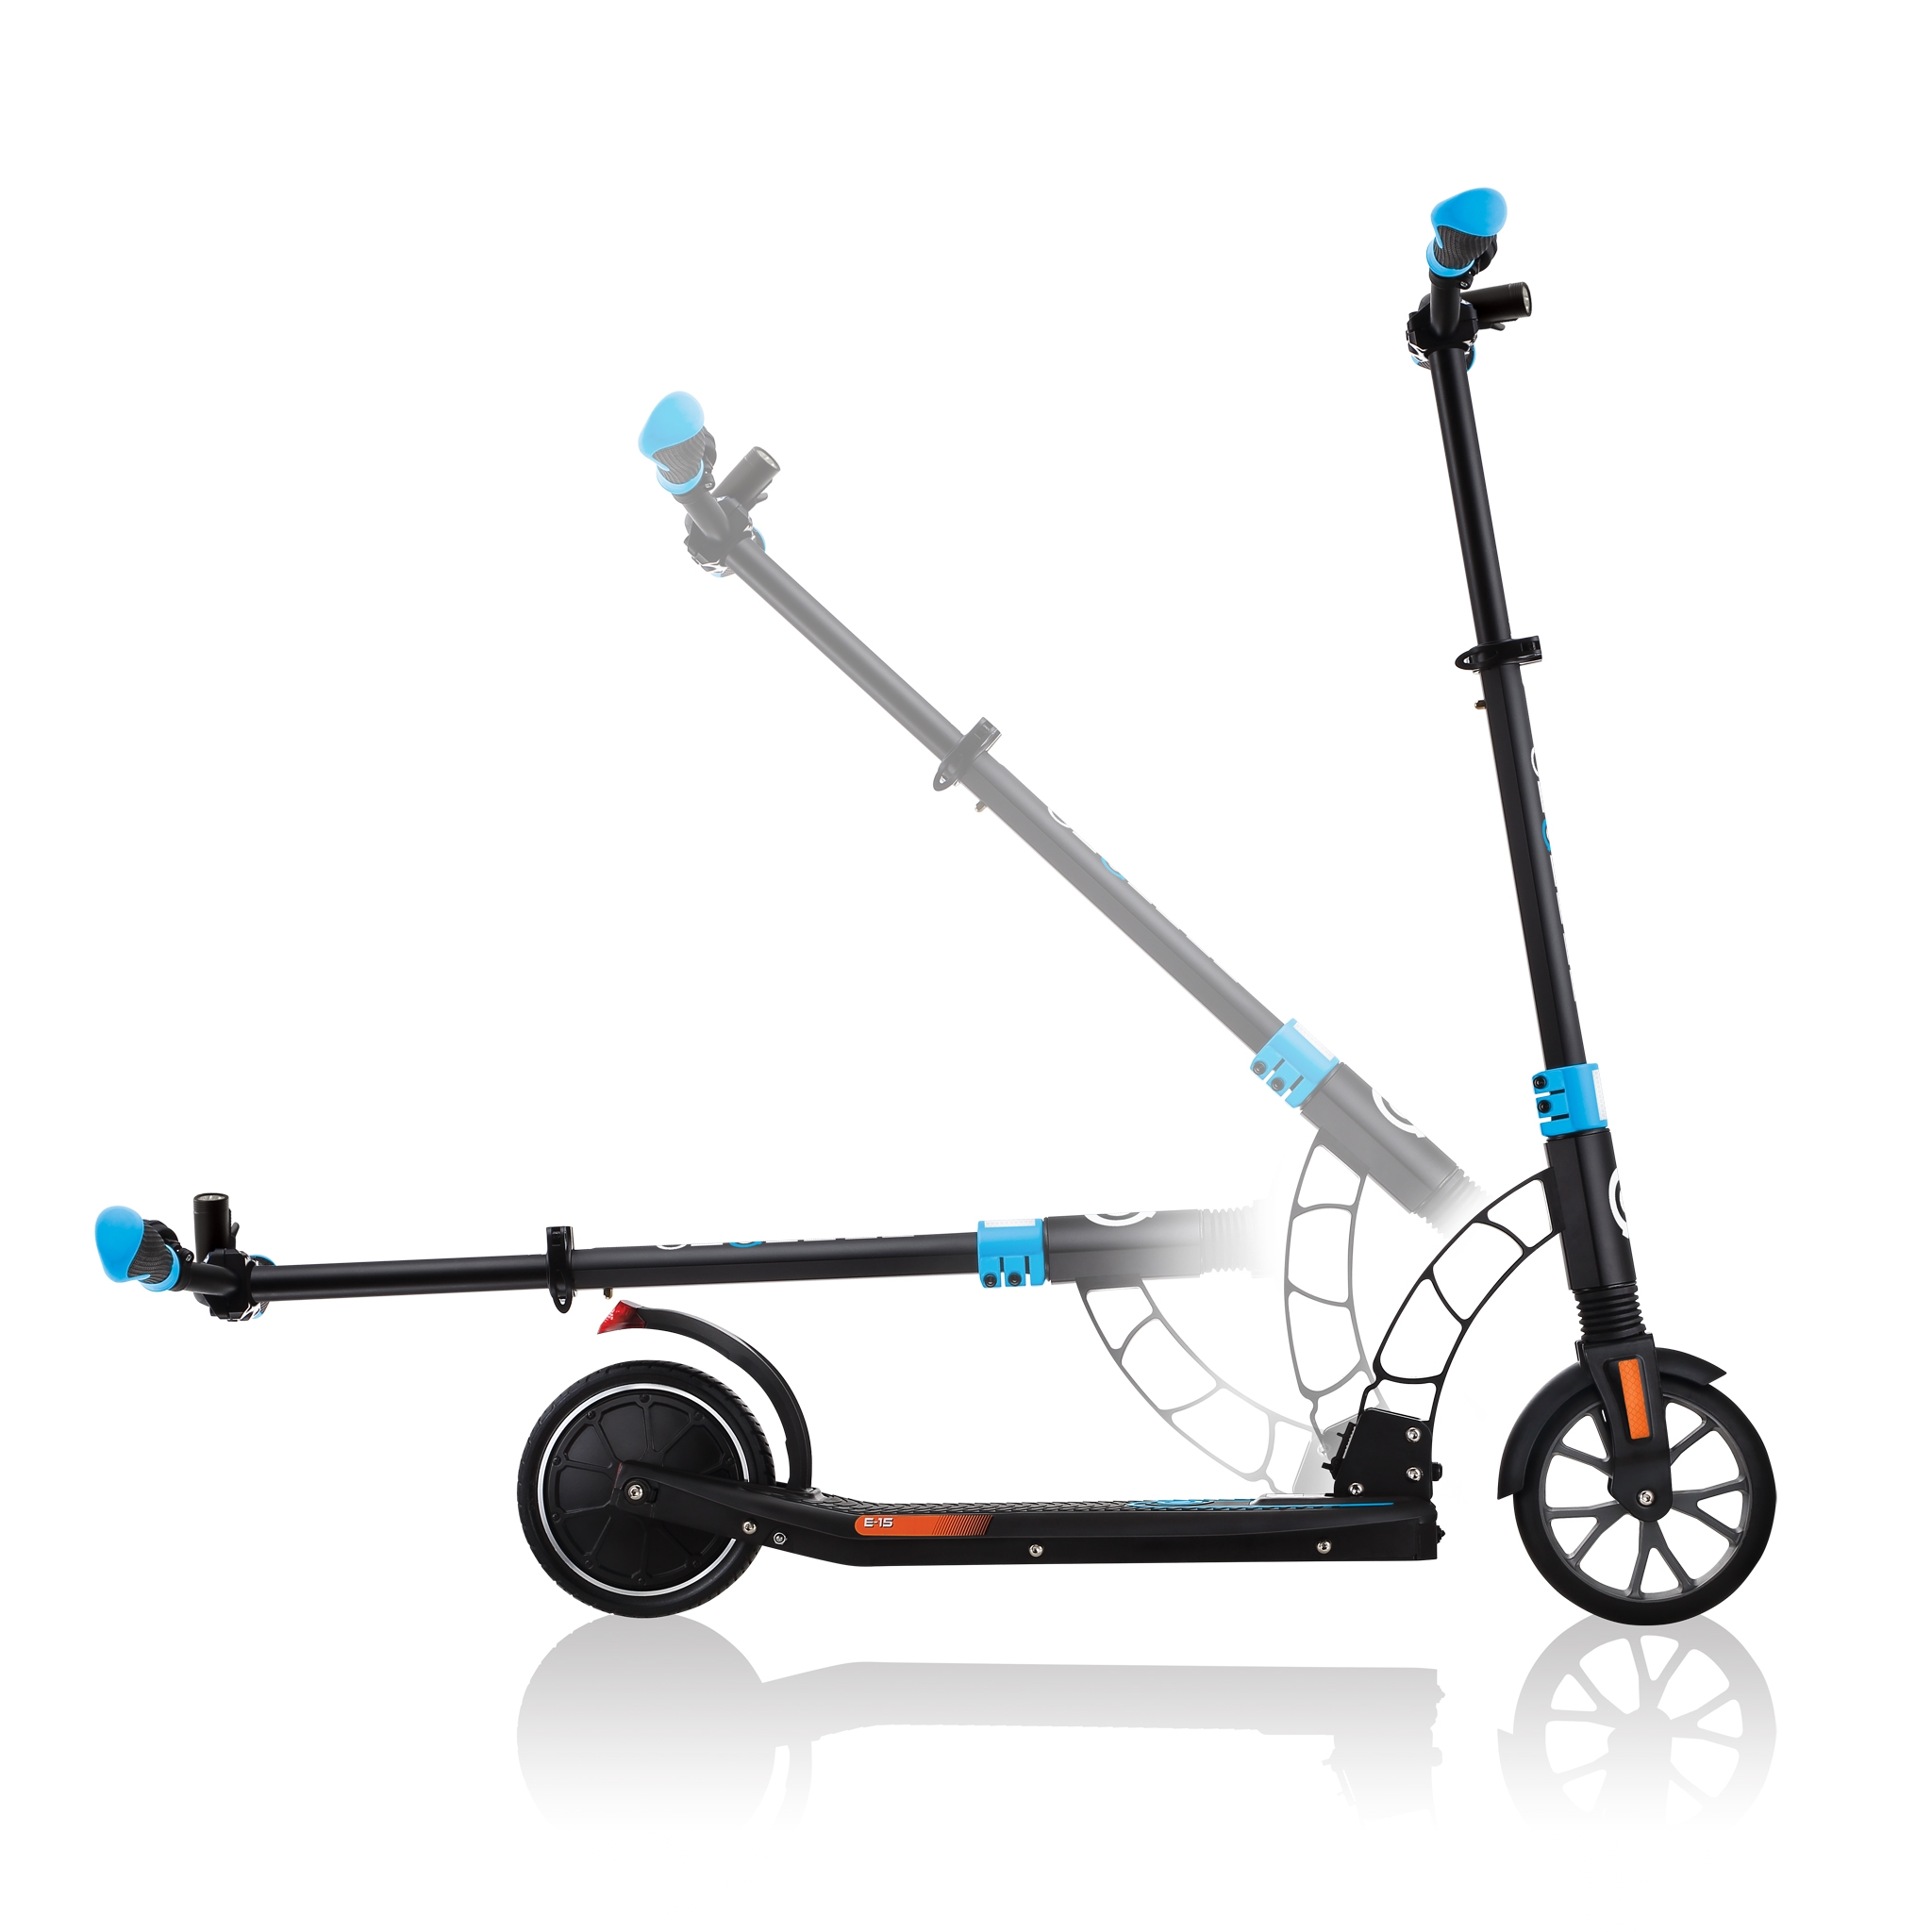 Globber-ONE-K-E-MOTION-15-foldable-electric-scooter-for-adults-and-teens-aged-14-and-above